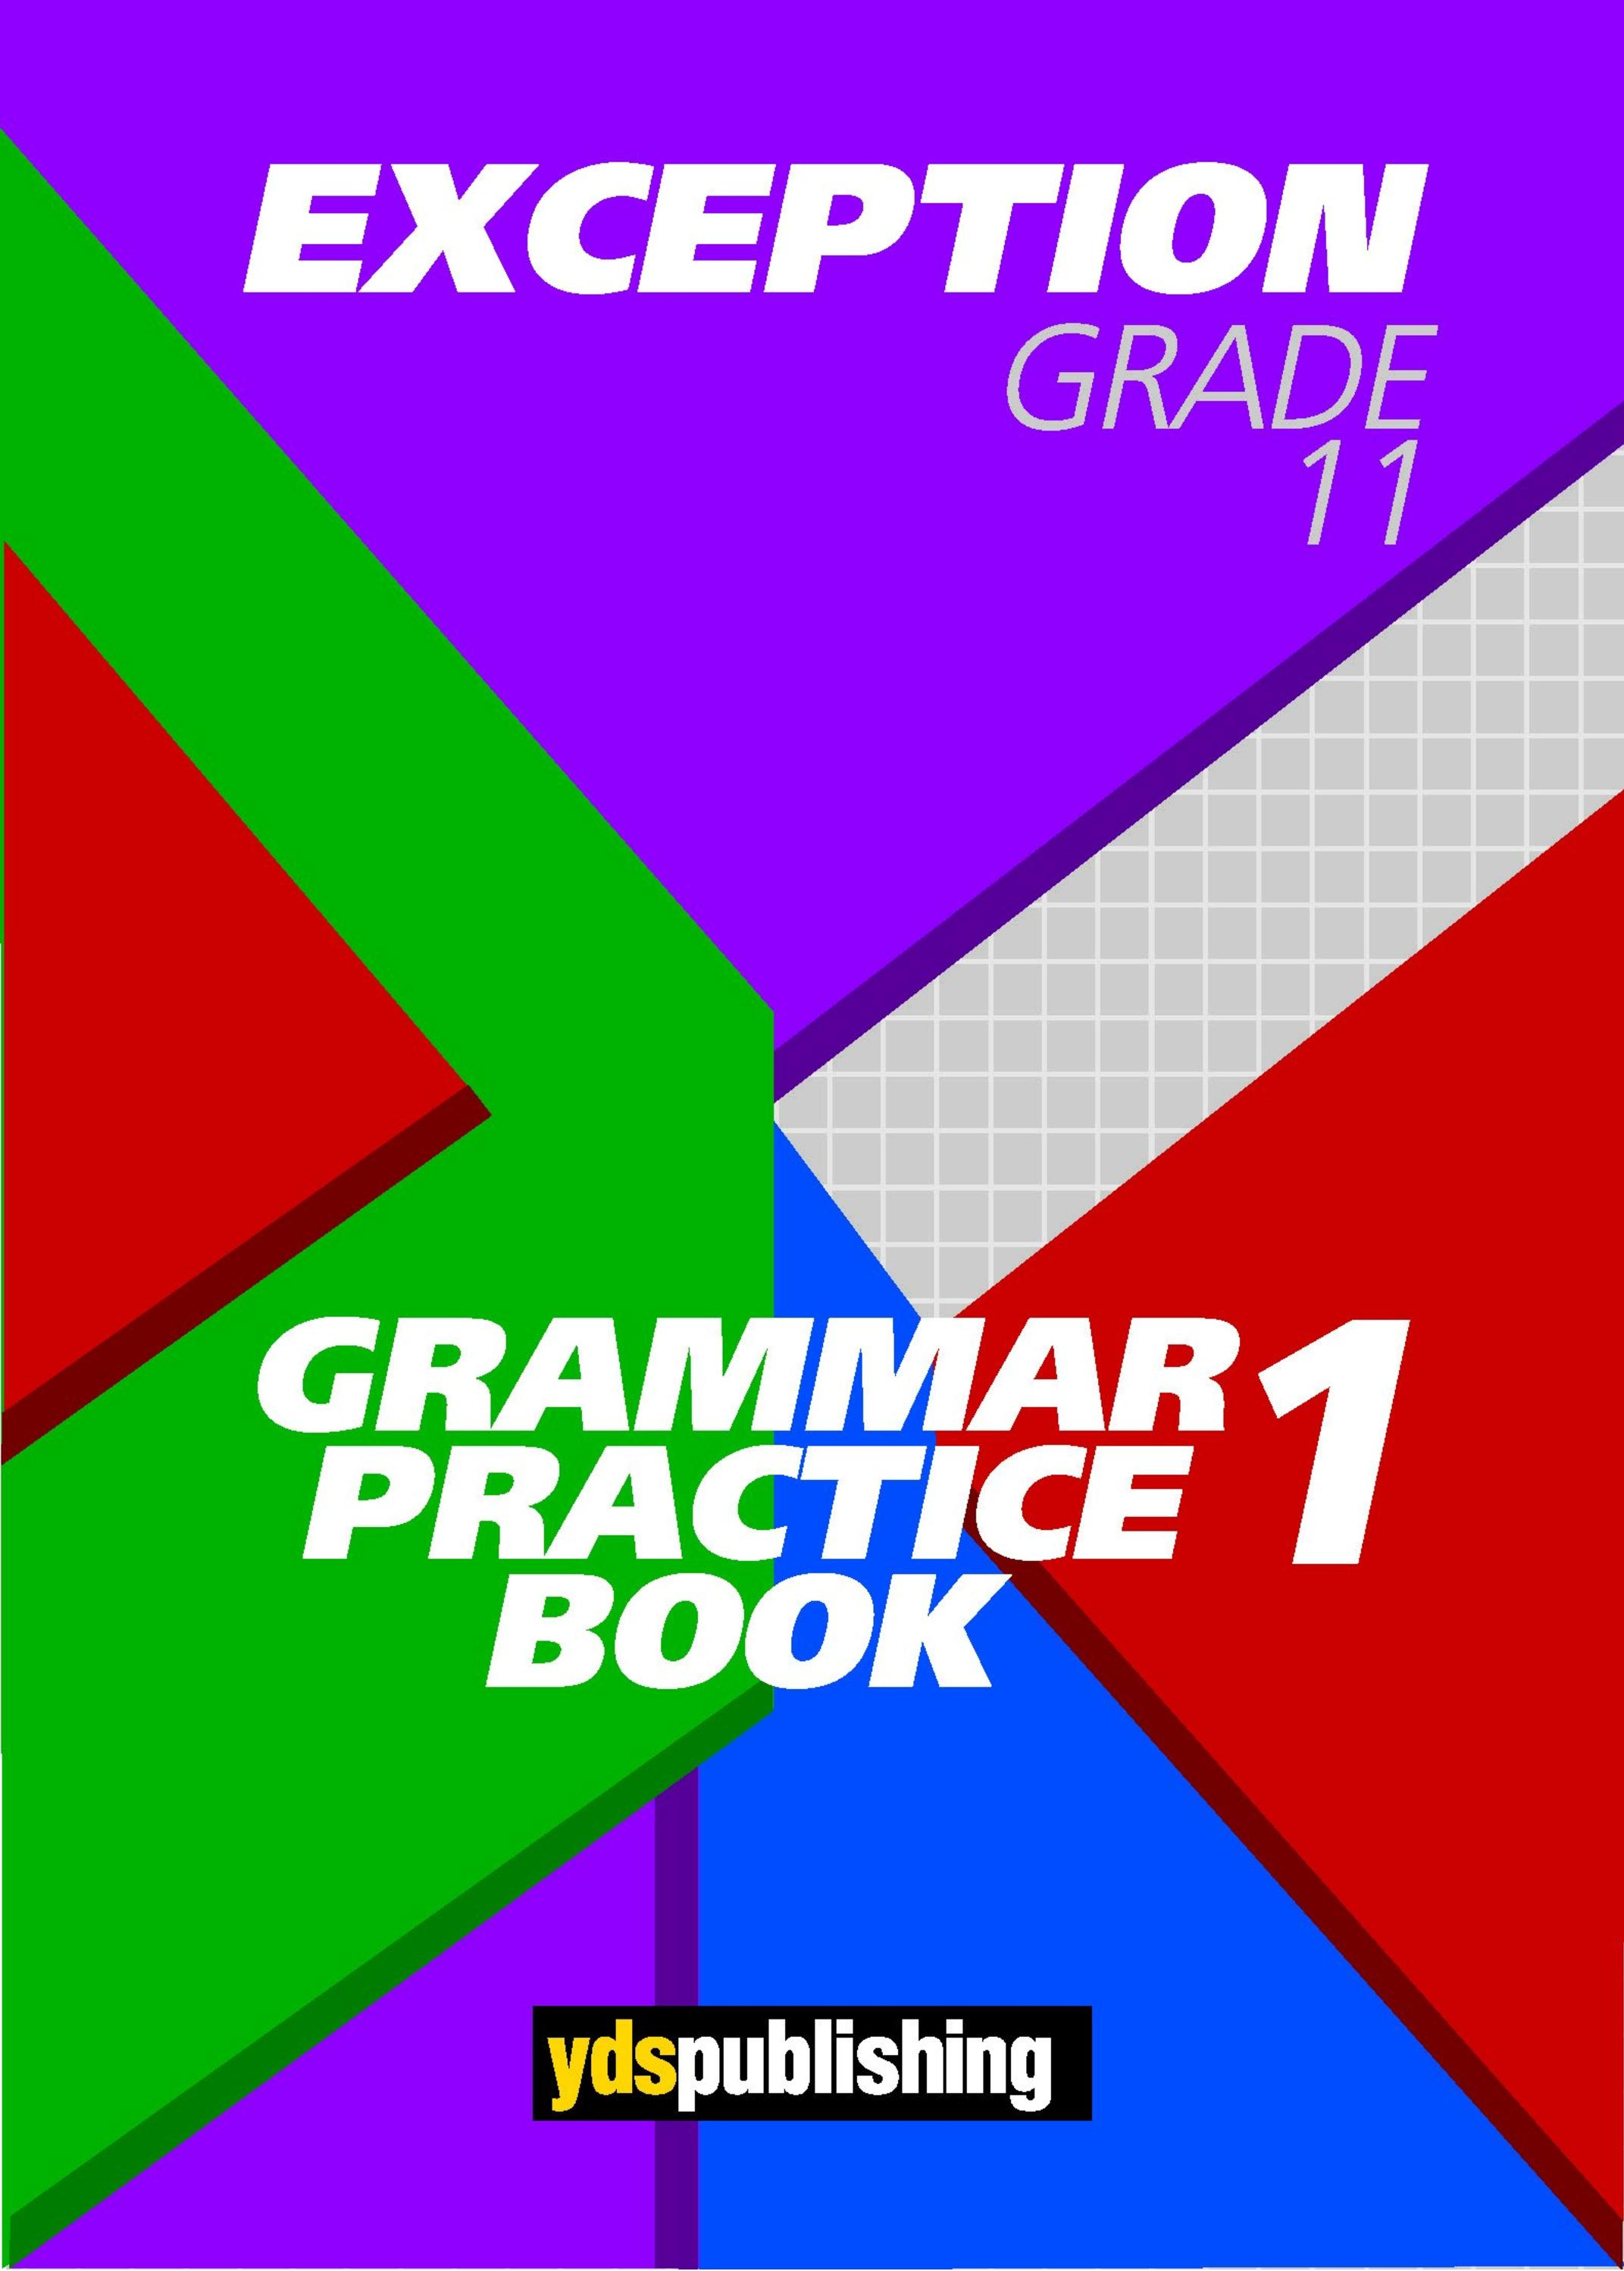 Exception Grade 11 Free Sample - Practice Book